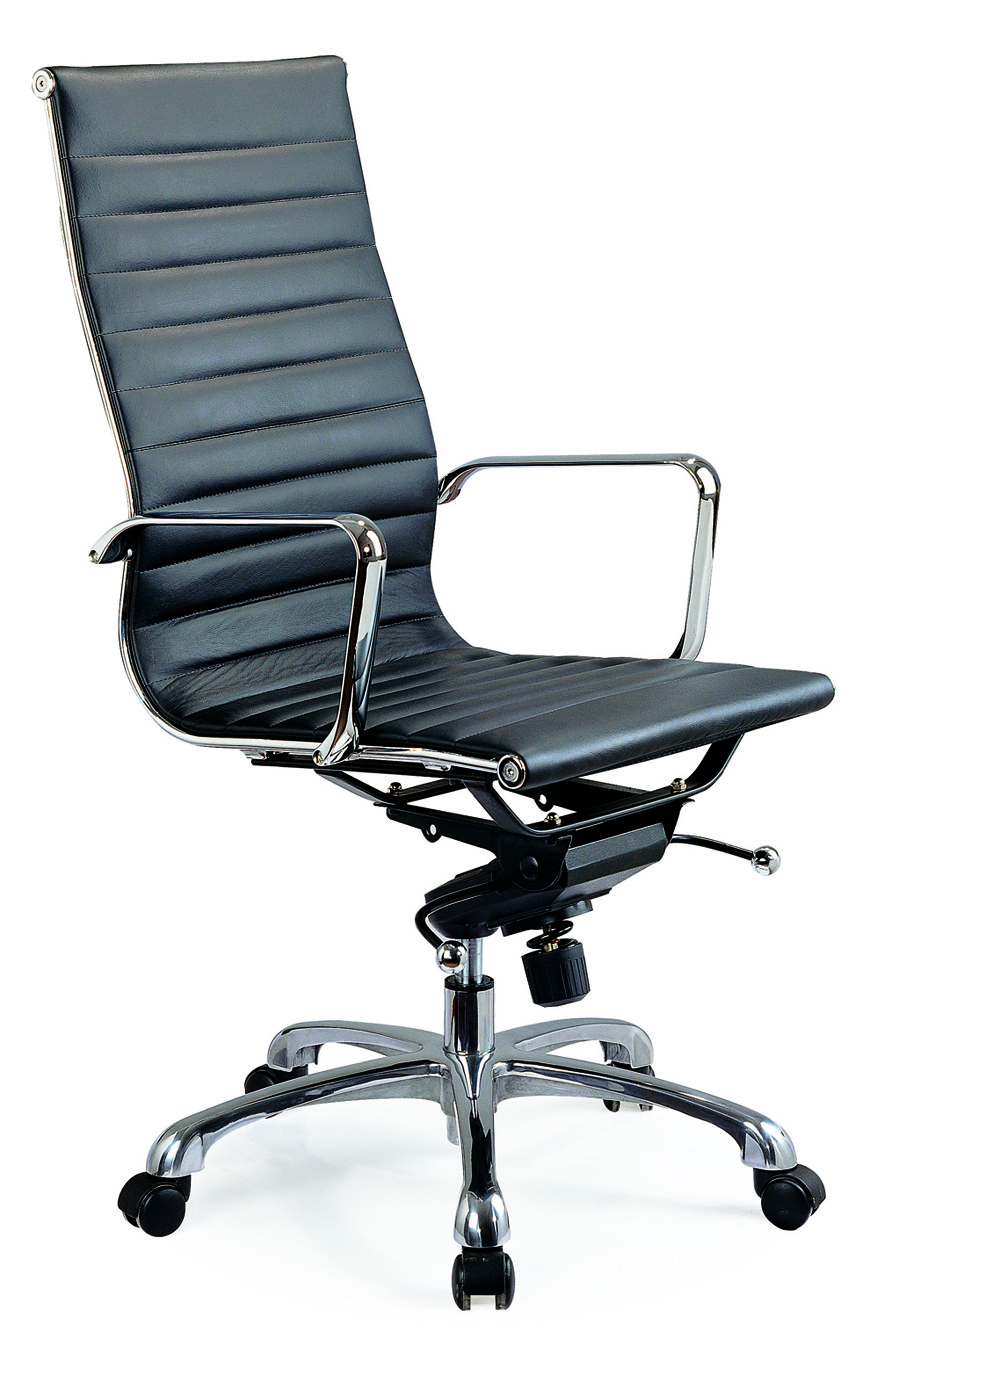 Comfy High Back Office Chair In Black ...